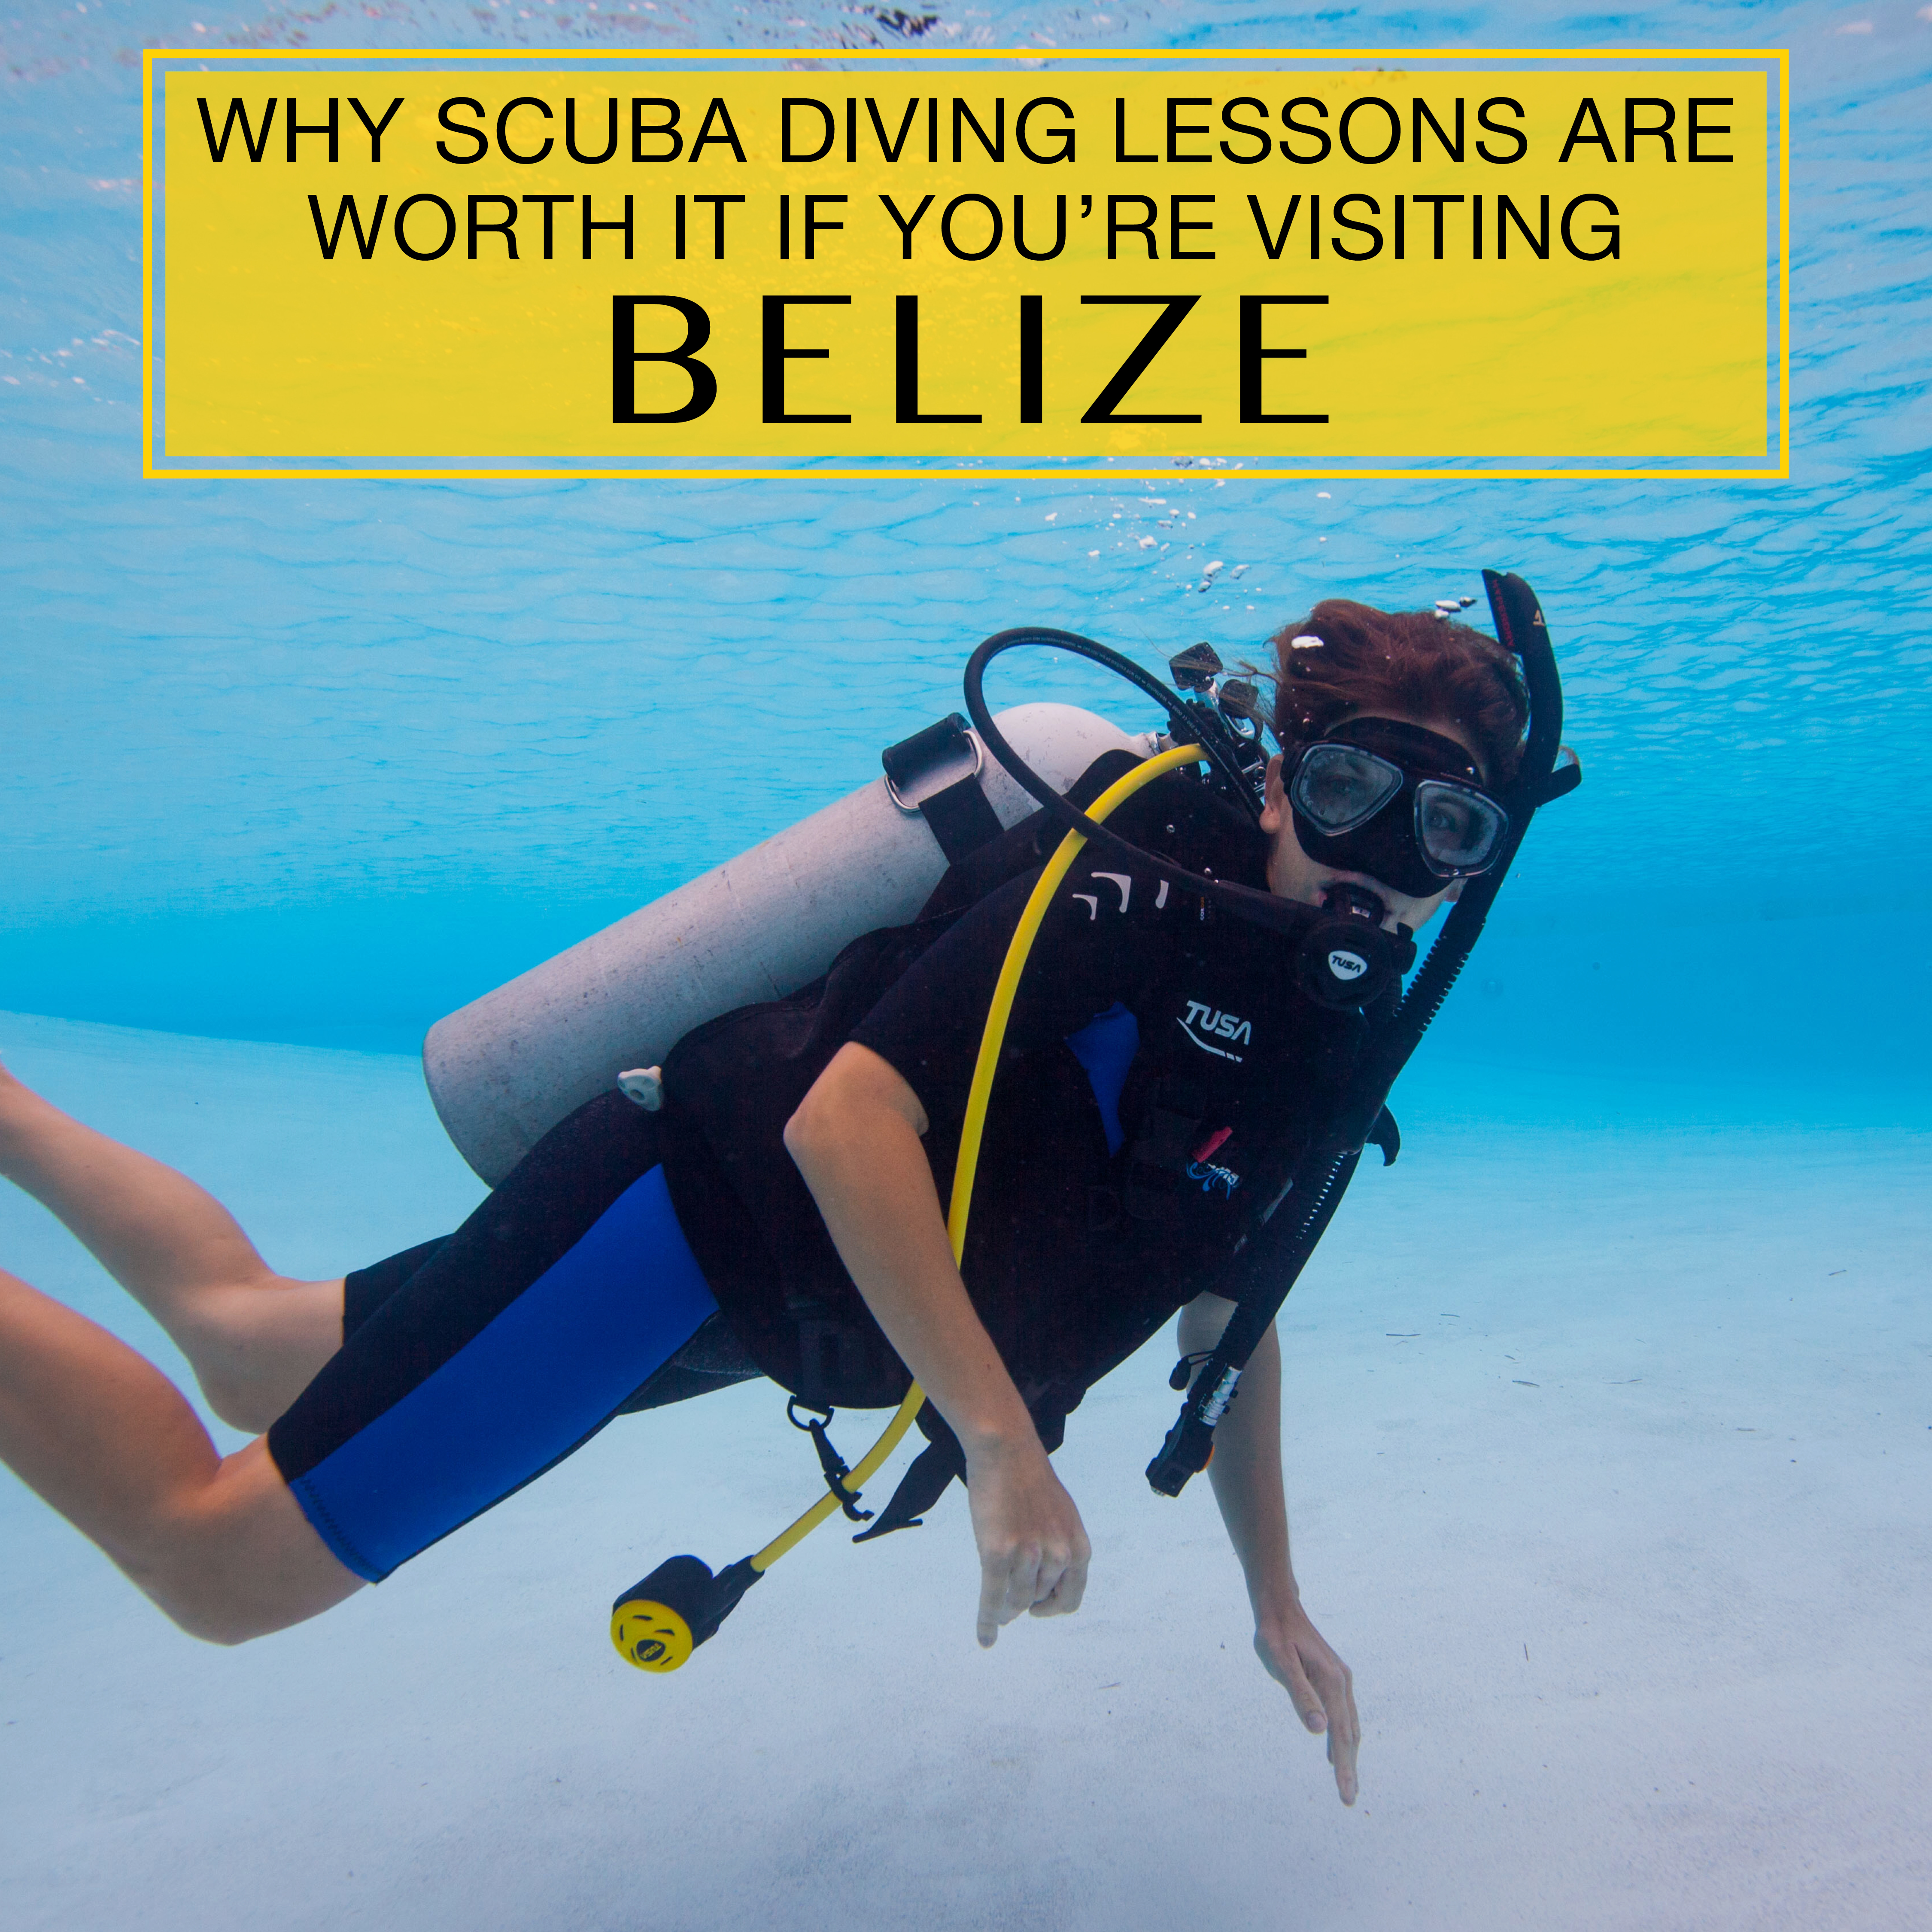 why-scuba-lessons-are-worth-it